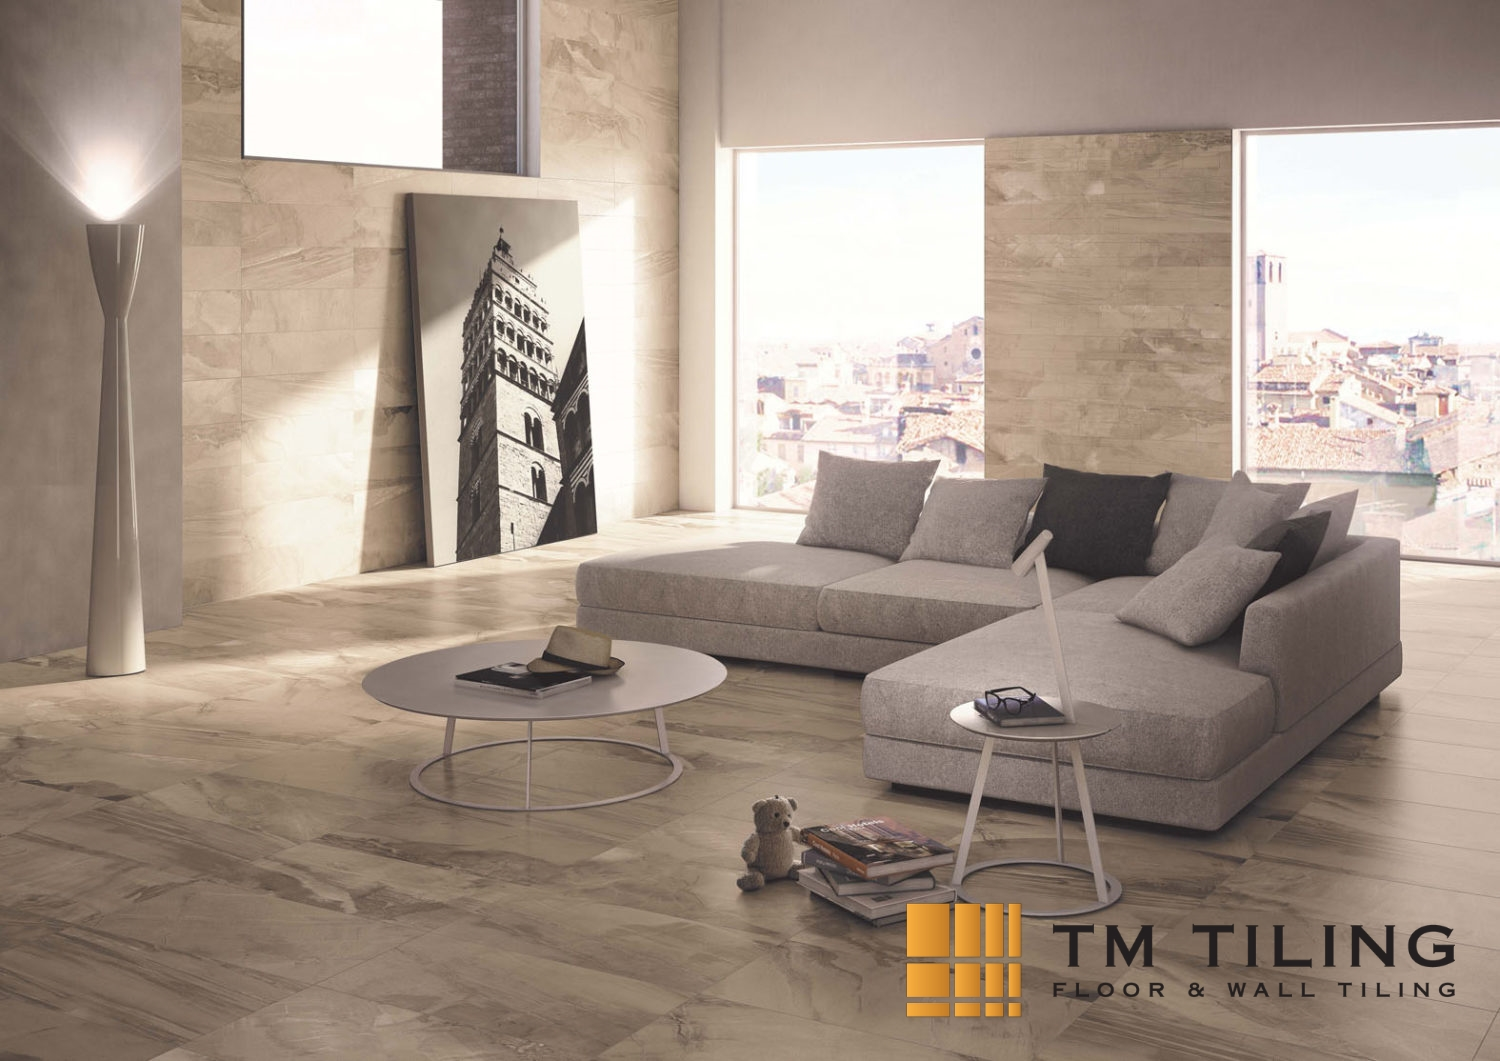 tiles-hdb-tm-tiling-singapore_wm